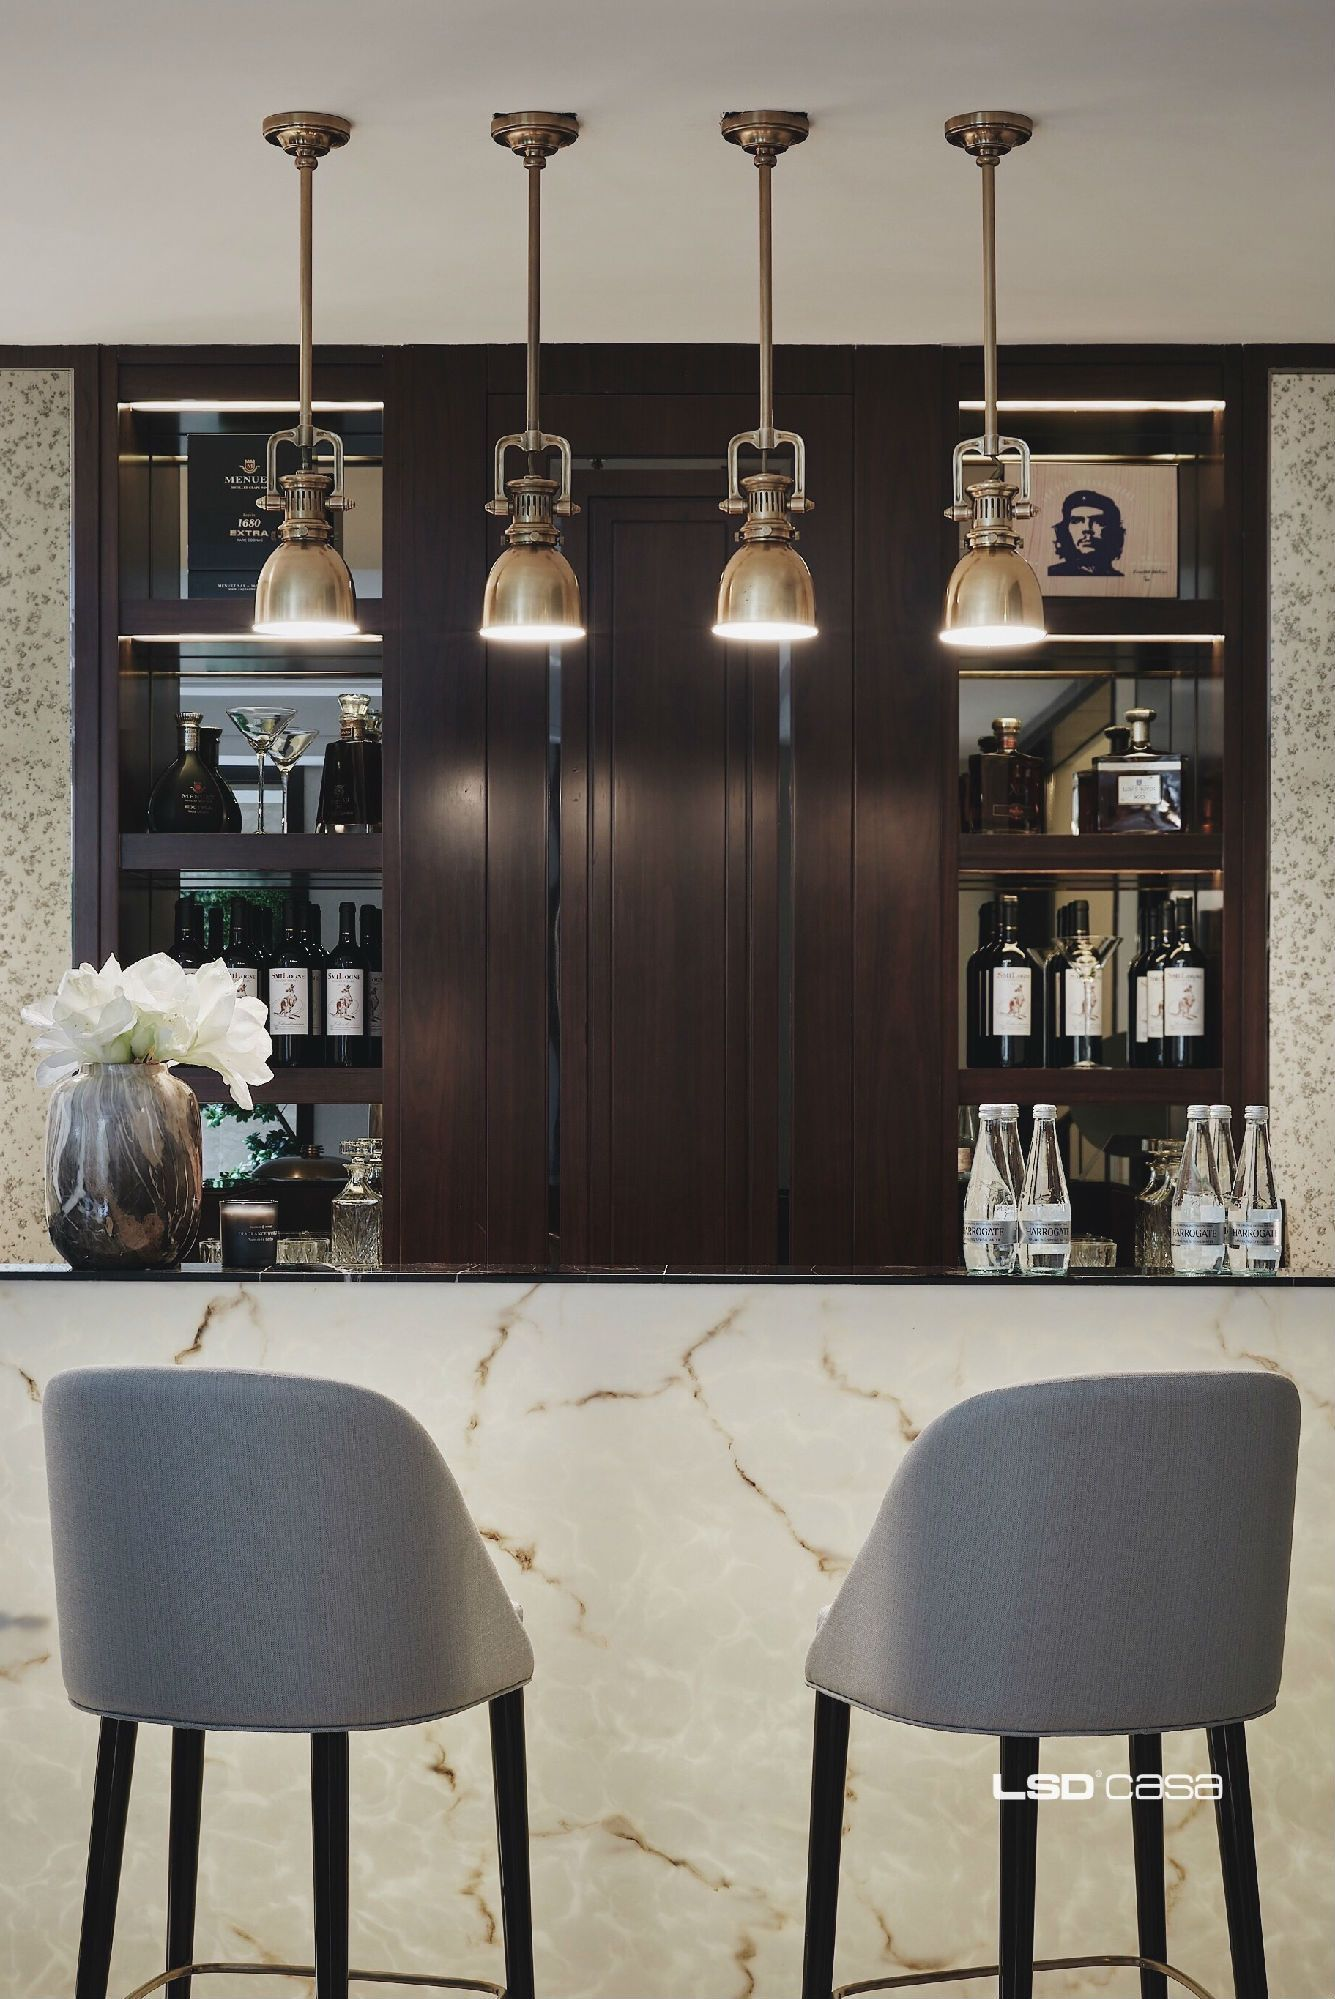 Find out how to design your own home bar we have given the amazing ideas that you can do in also rh pinterest